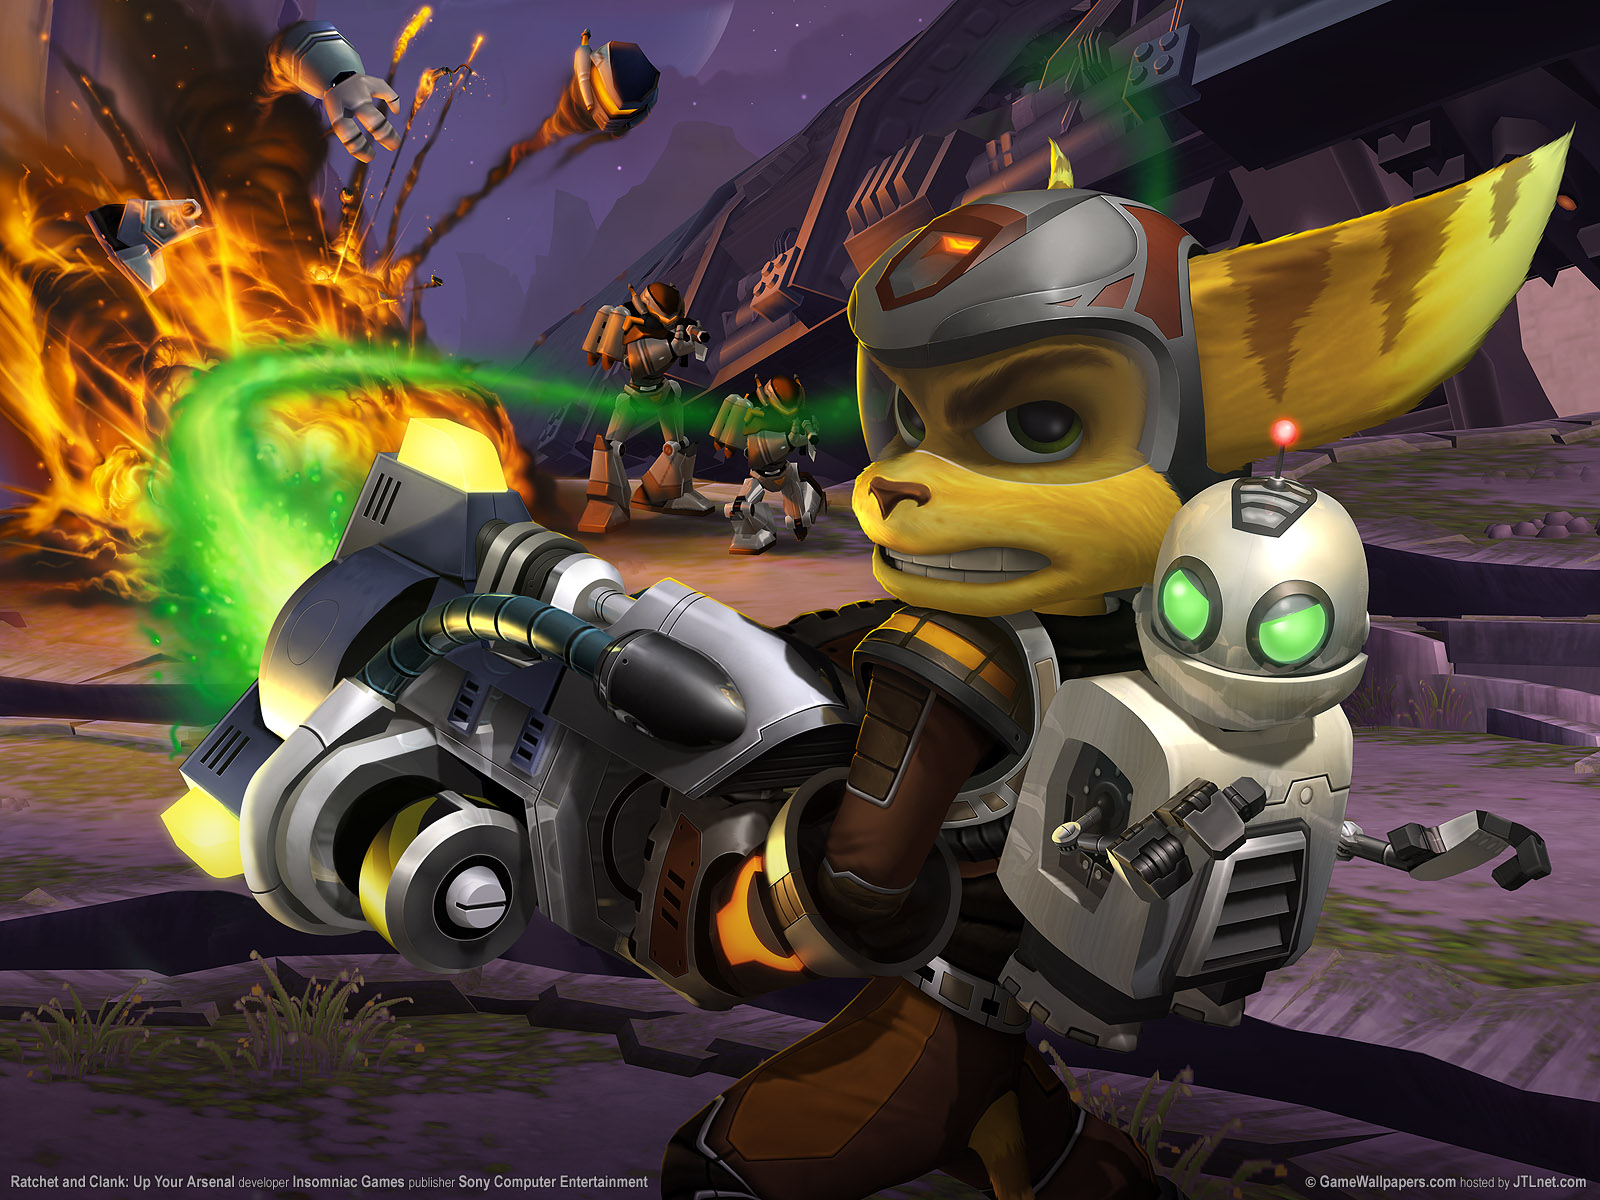 Devil May Cry 3d Wallpaper Ratchet Amp Clank Fondos De Pantalla Ratchet Amp Clank Fotos